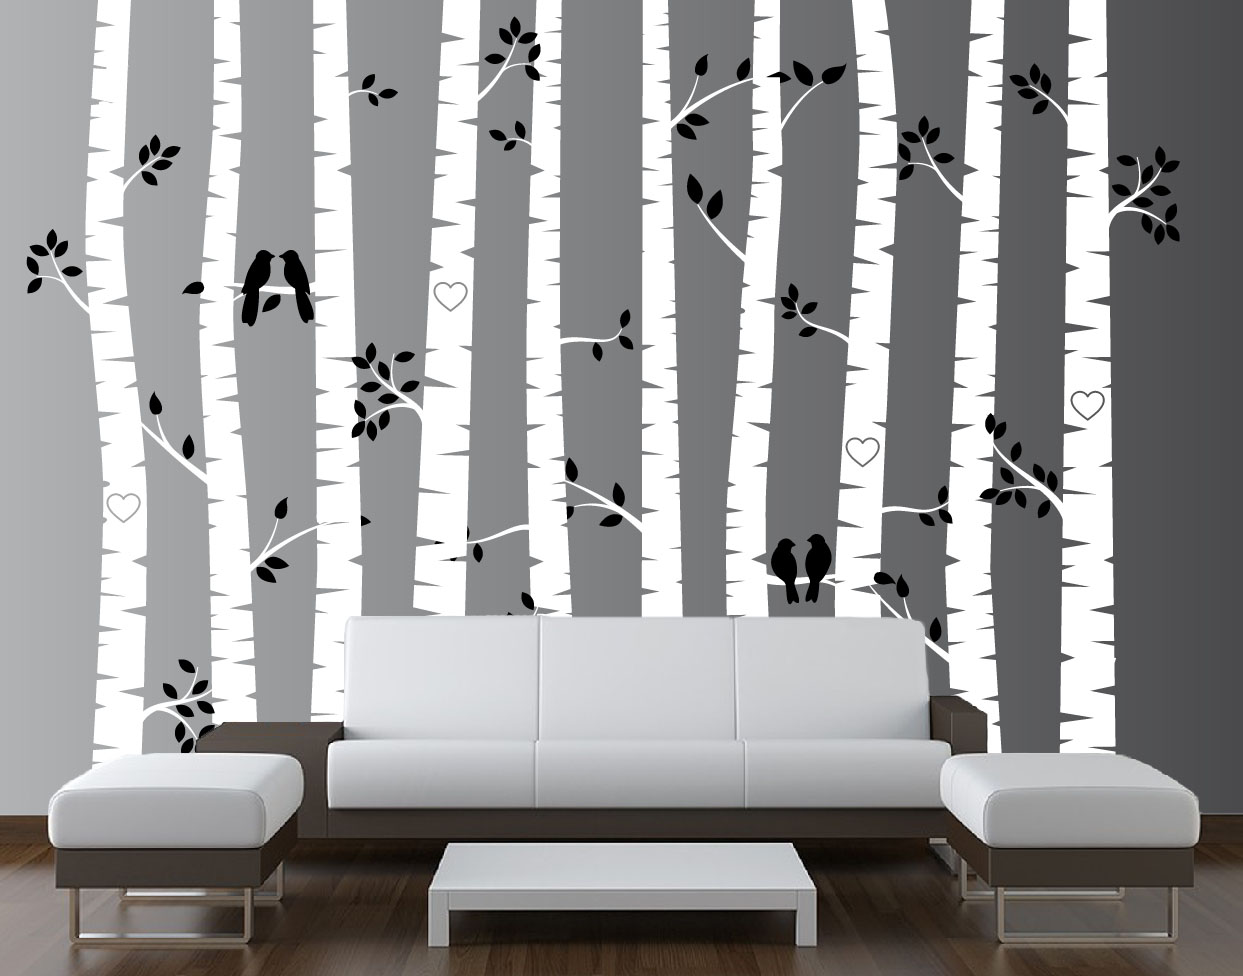 1272-birch-tree-wall-decal-sticker-with-hearts.jpg